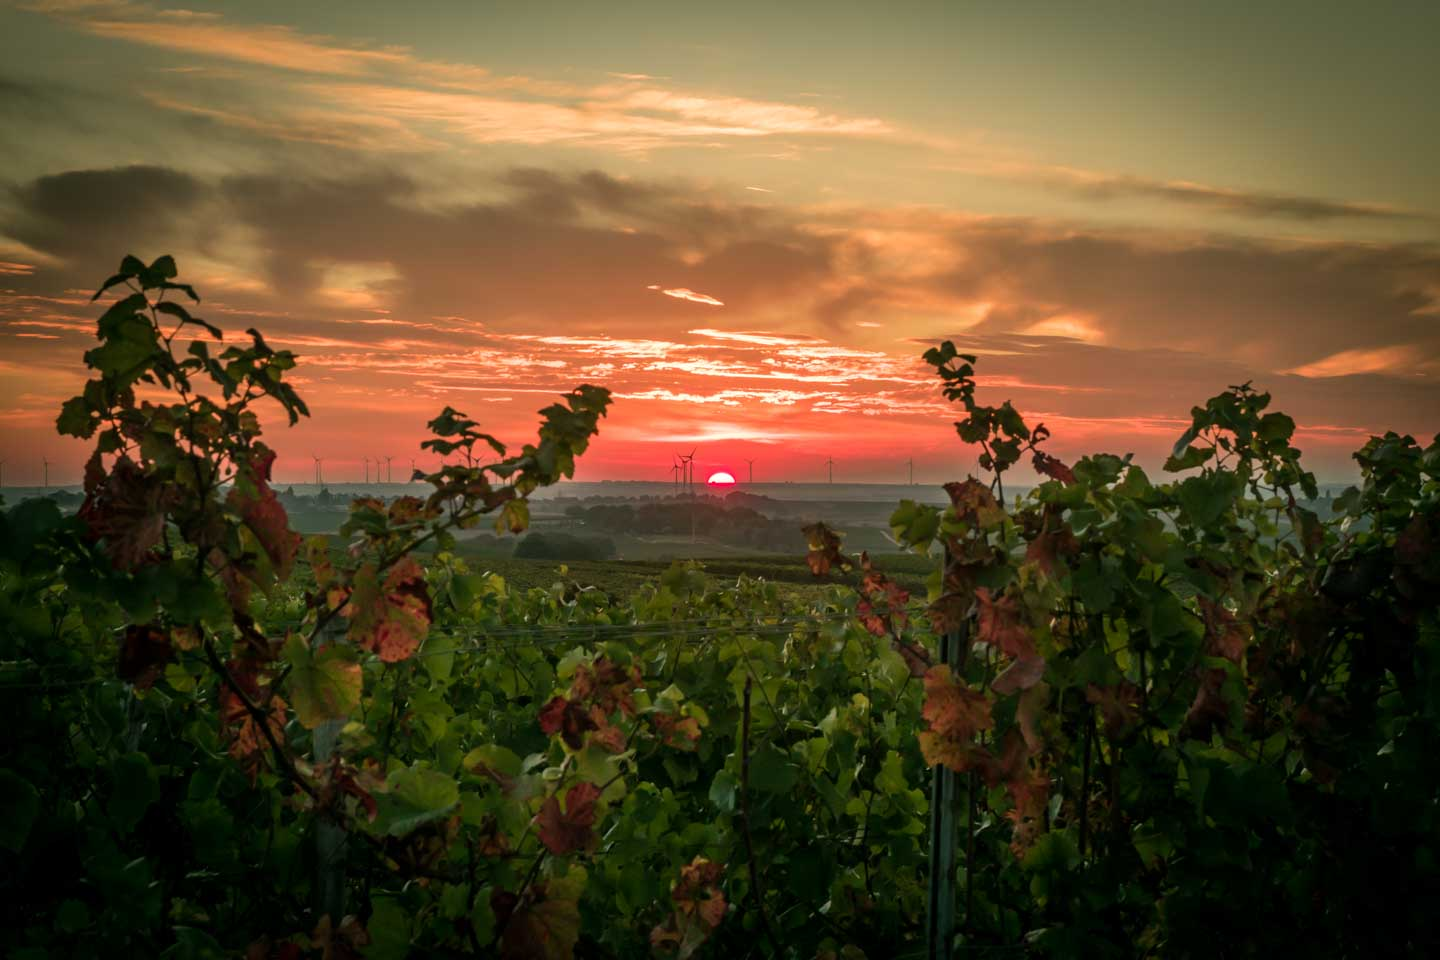 Sunset in the vineyard between Nierstein and Oppenheim